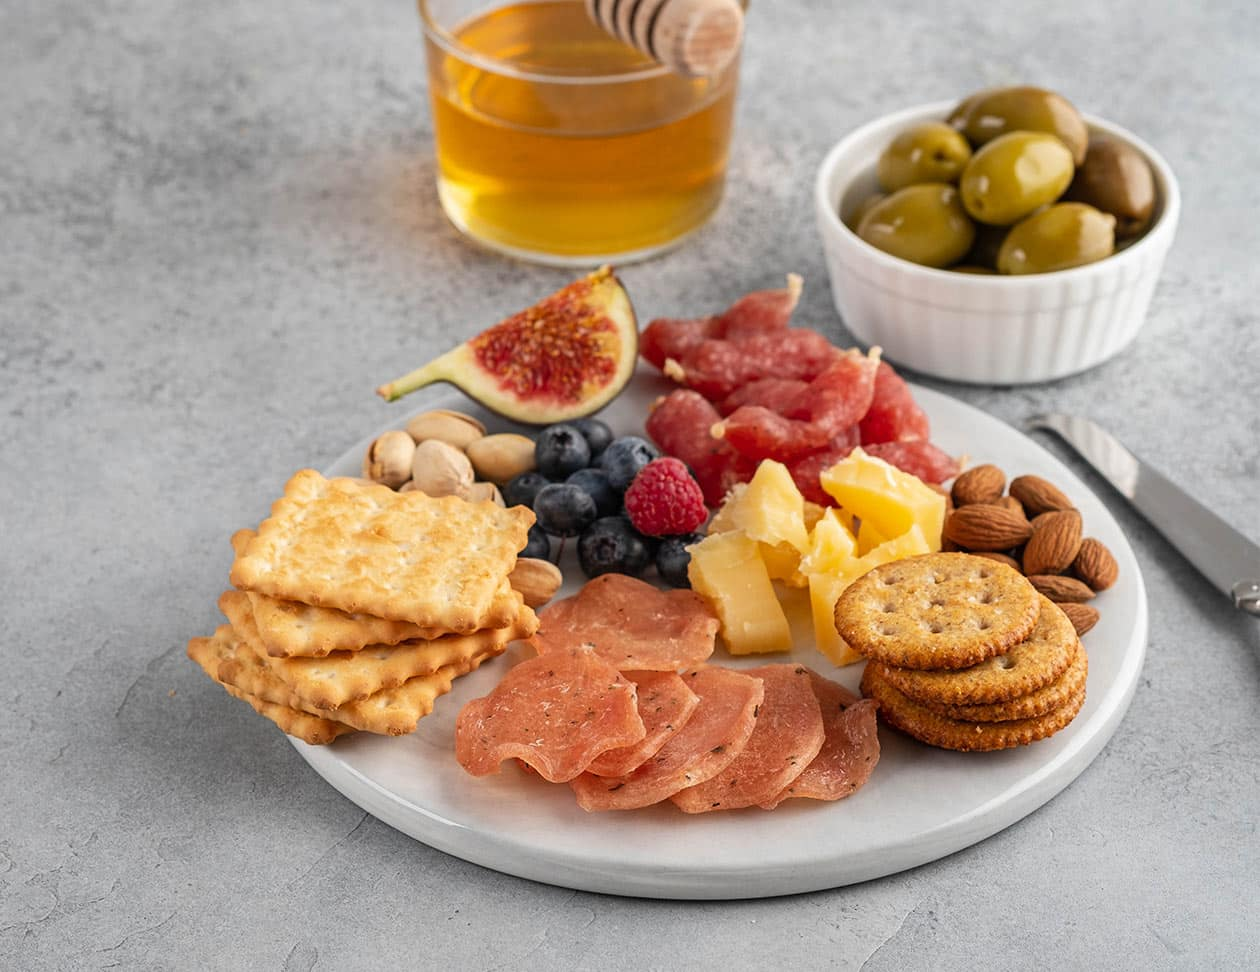 Charcuterie plate with meats, cheese, and olives